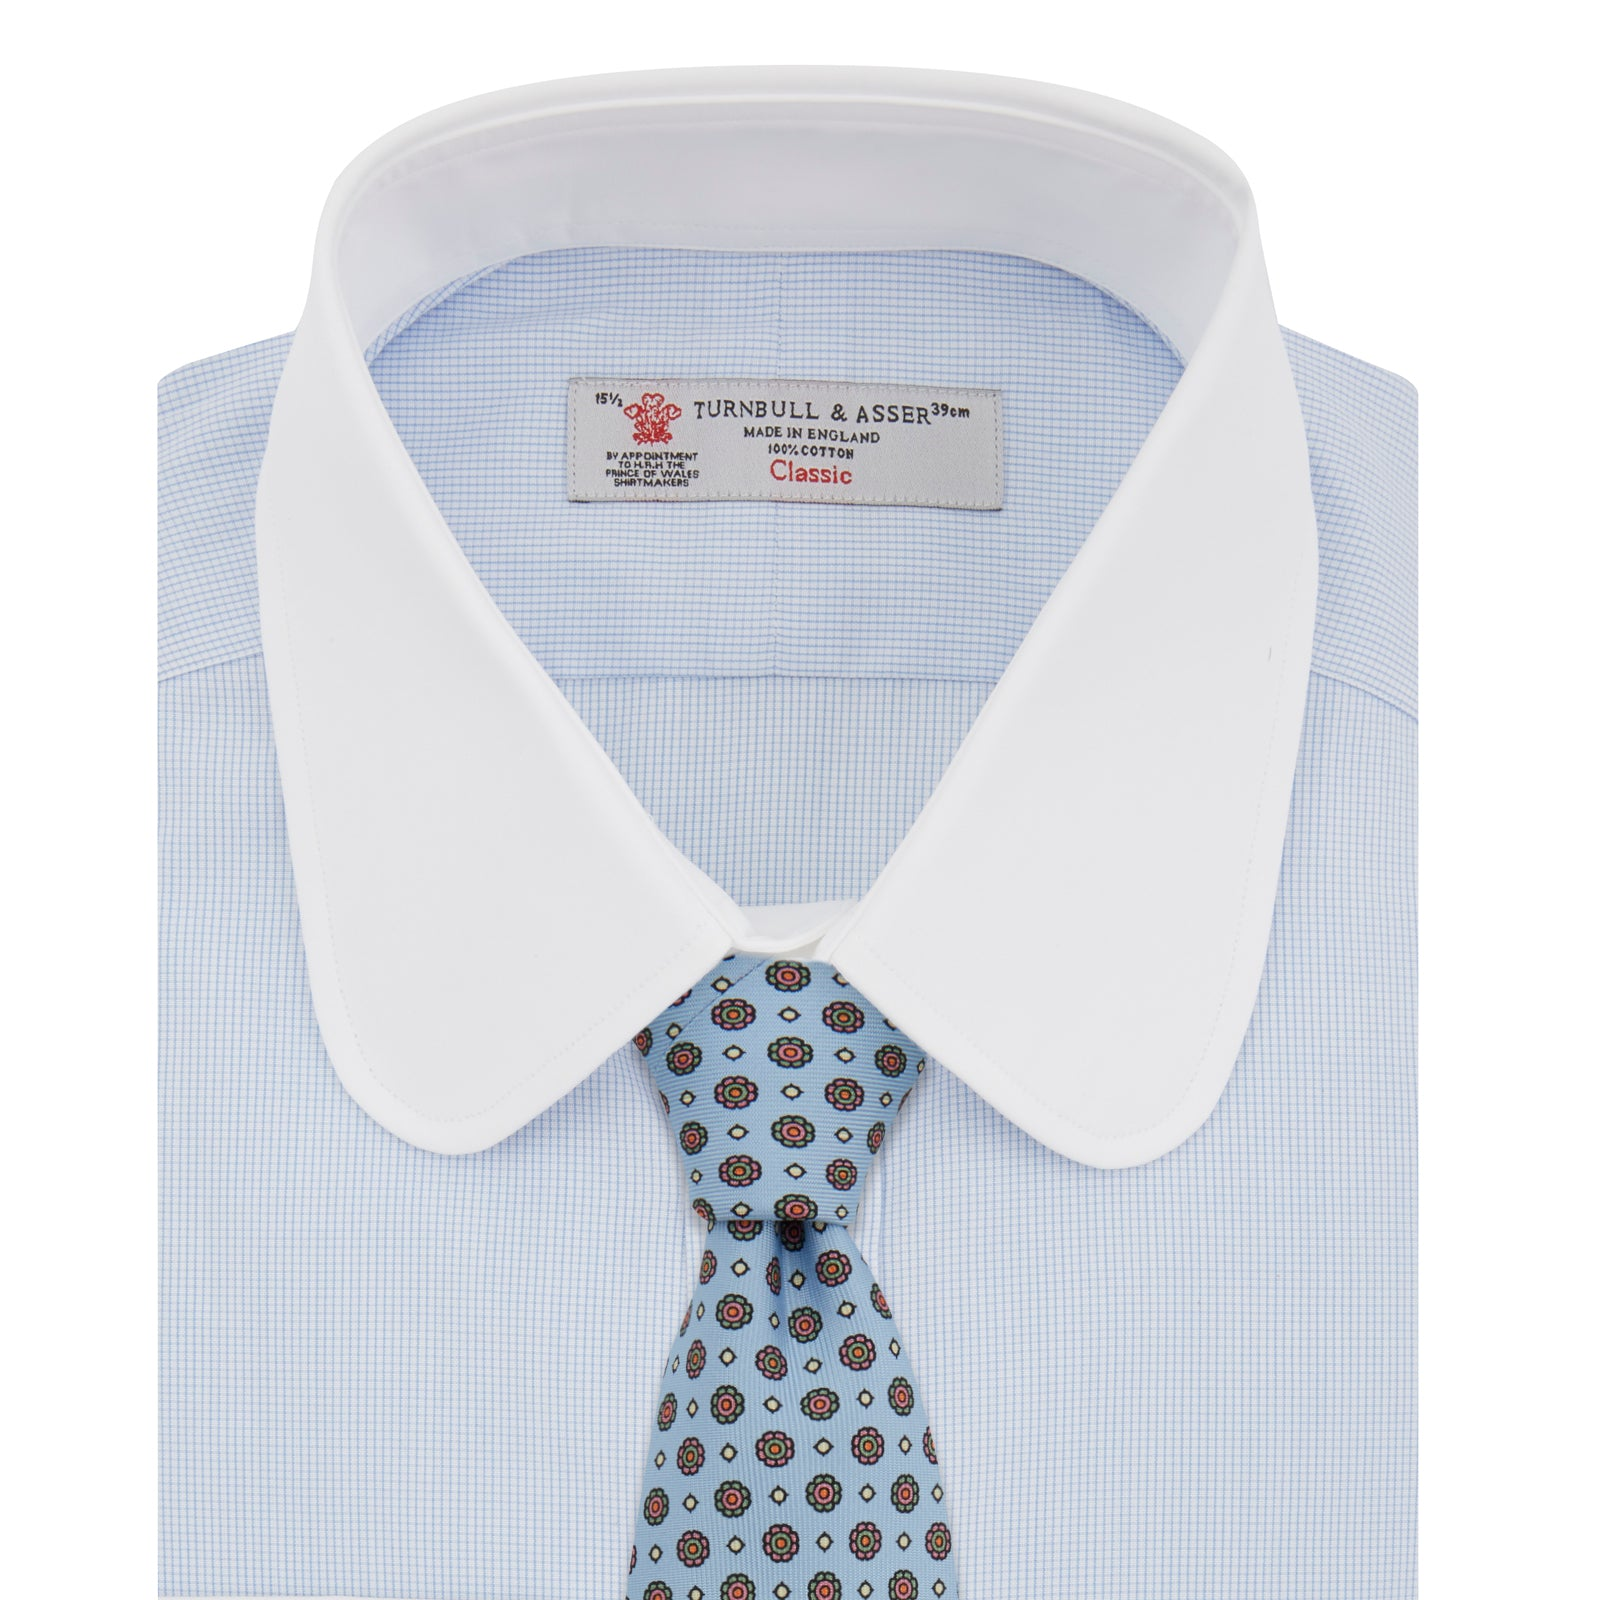 The Great Gatsby Cotton Shirt with White Collar and Double Cuffs